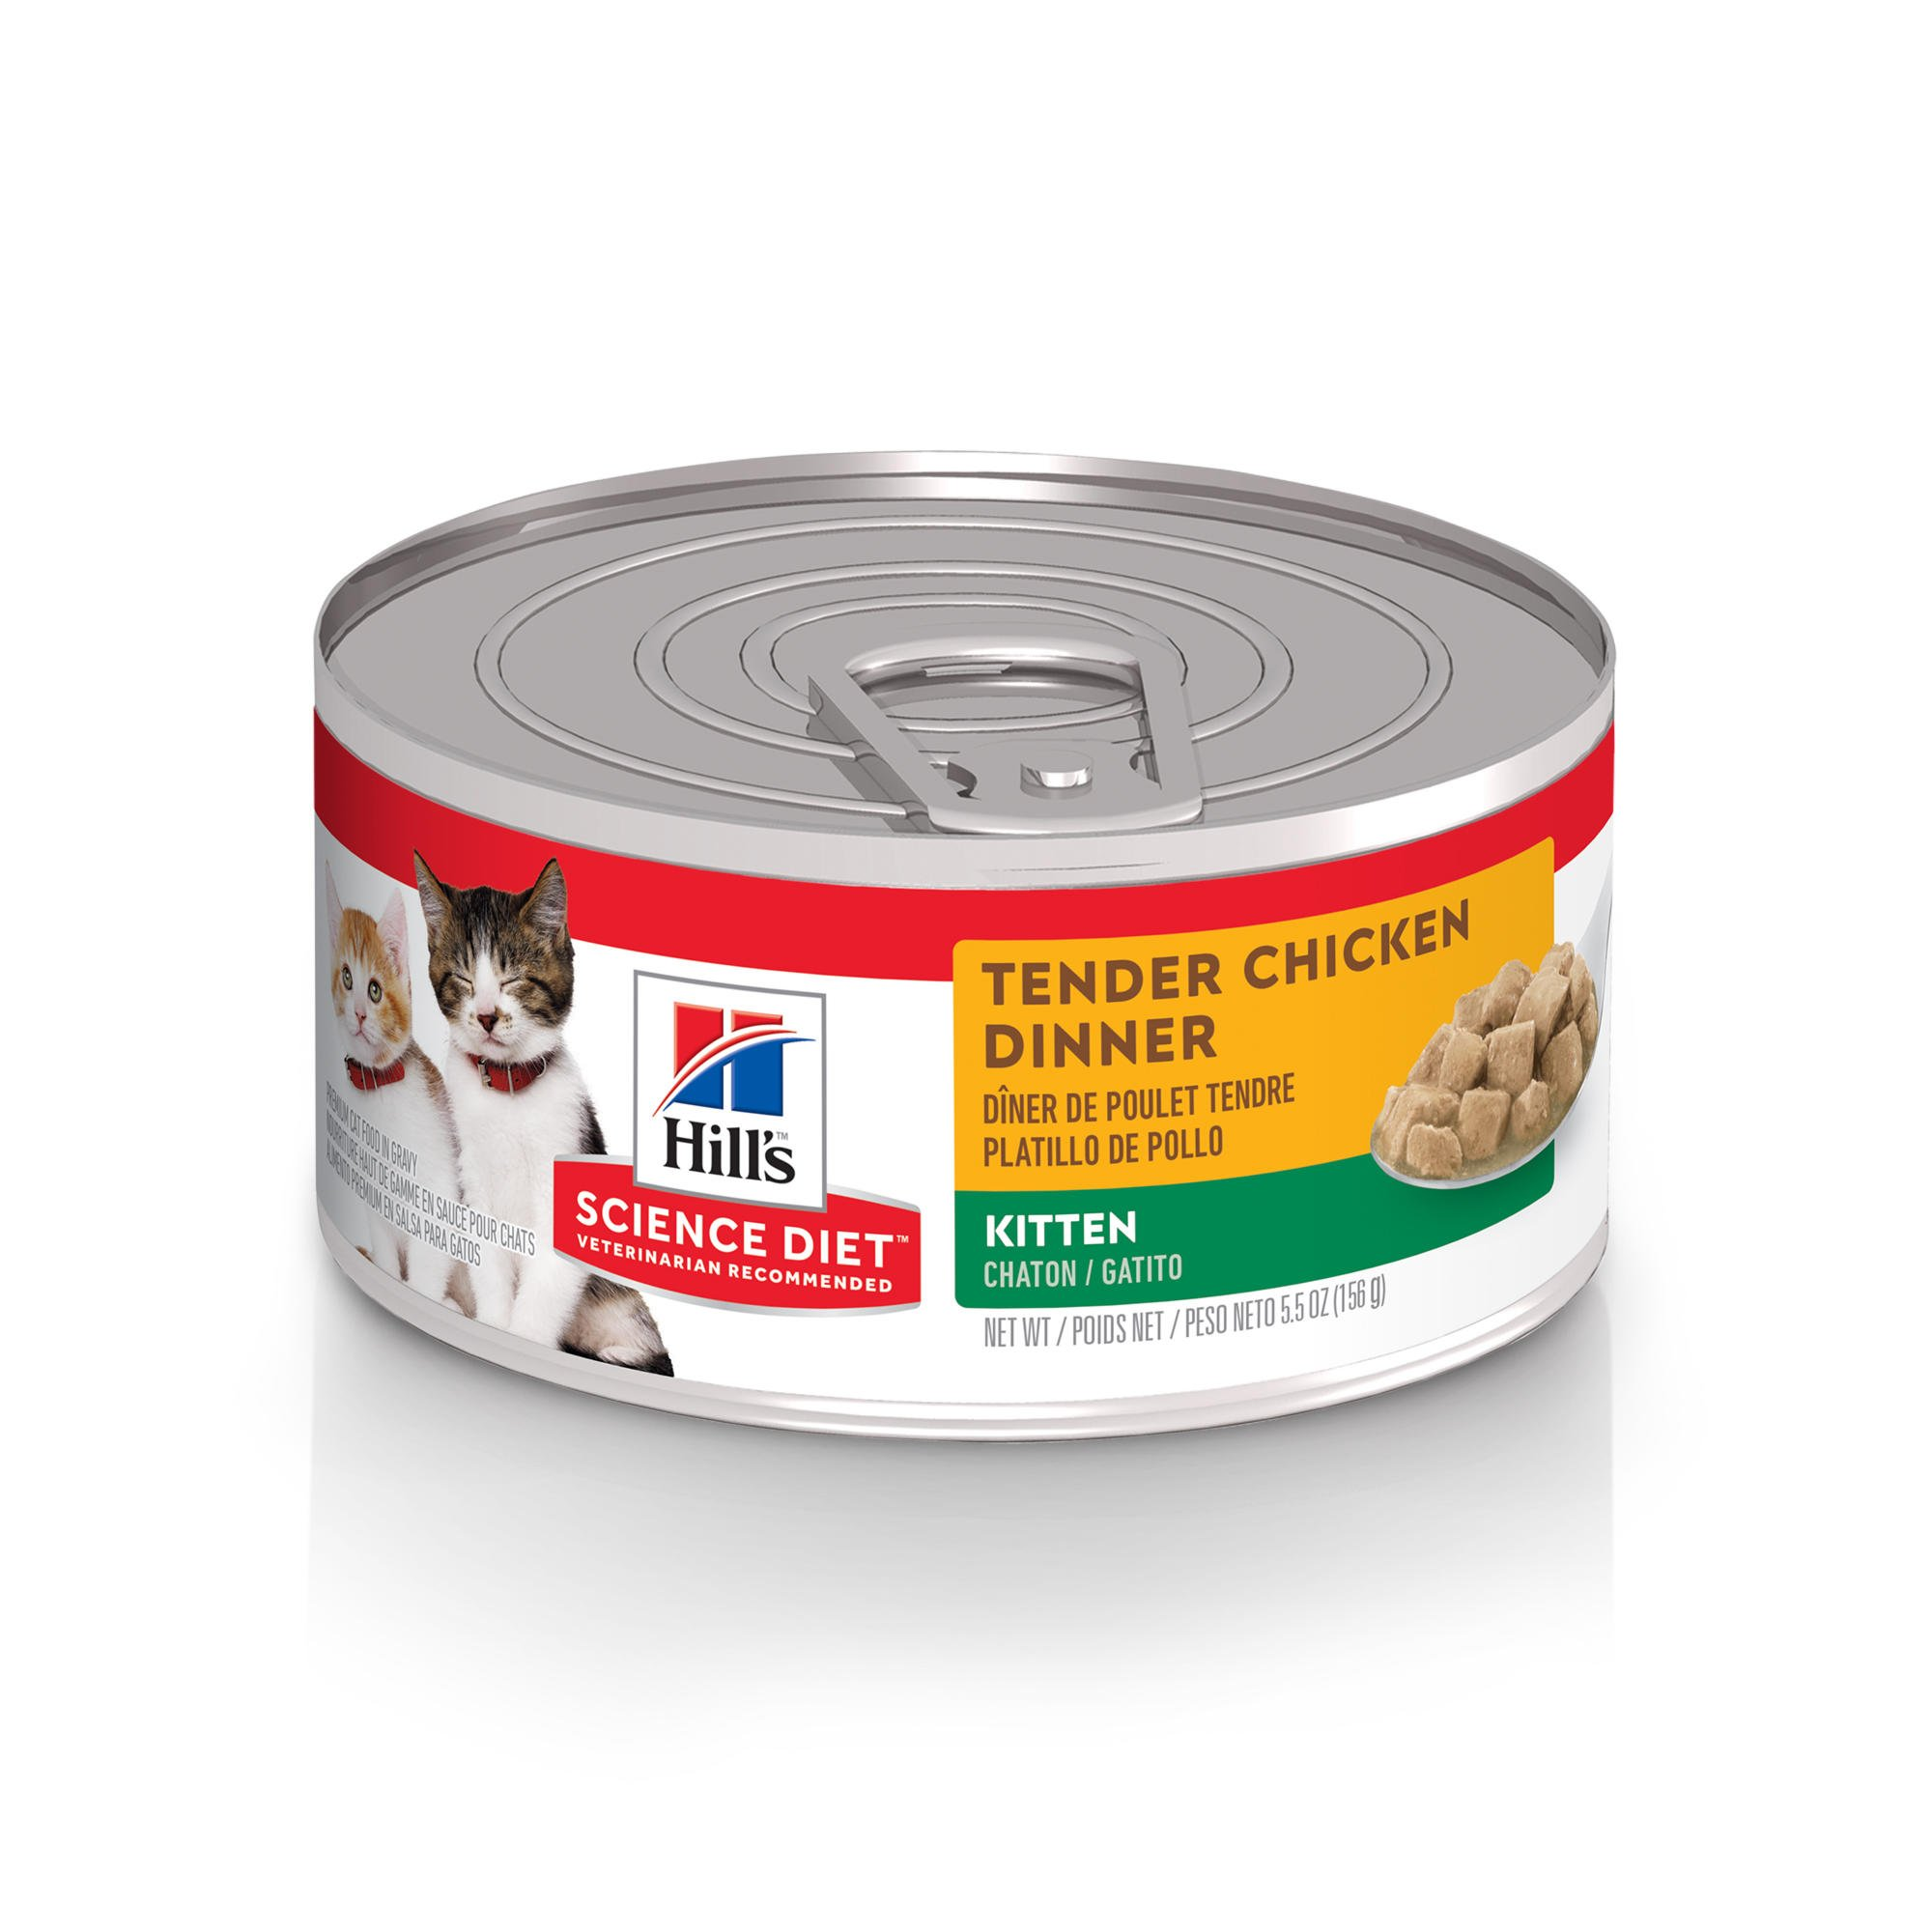 Hill s Science Diet Tender Chicken Dinner Canned Kitten Food